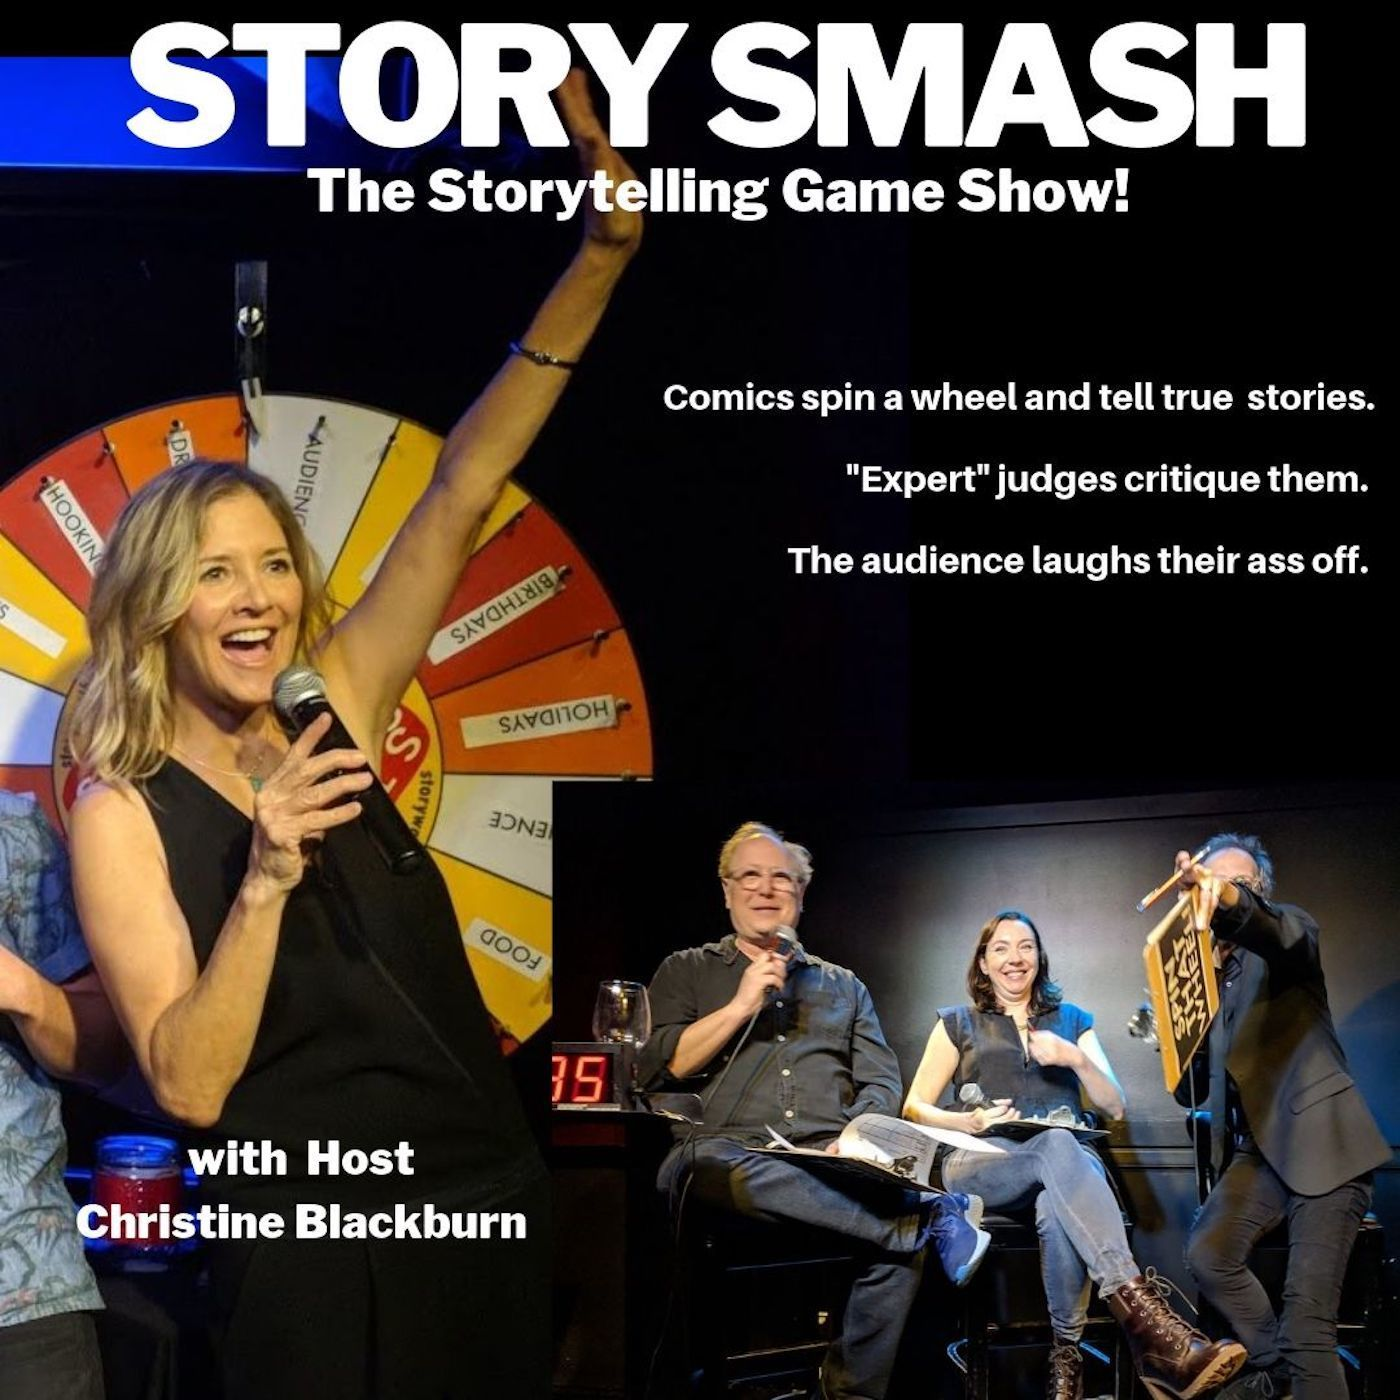 593 - Story Smash the Storytelling Game Show LIVE at The Hollywood Improv!